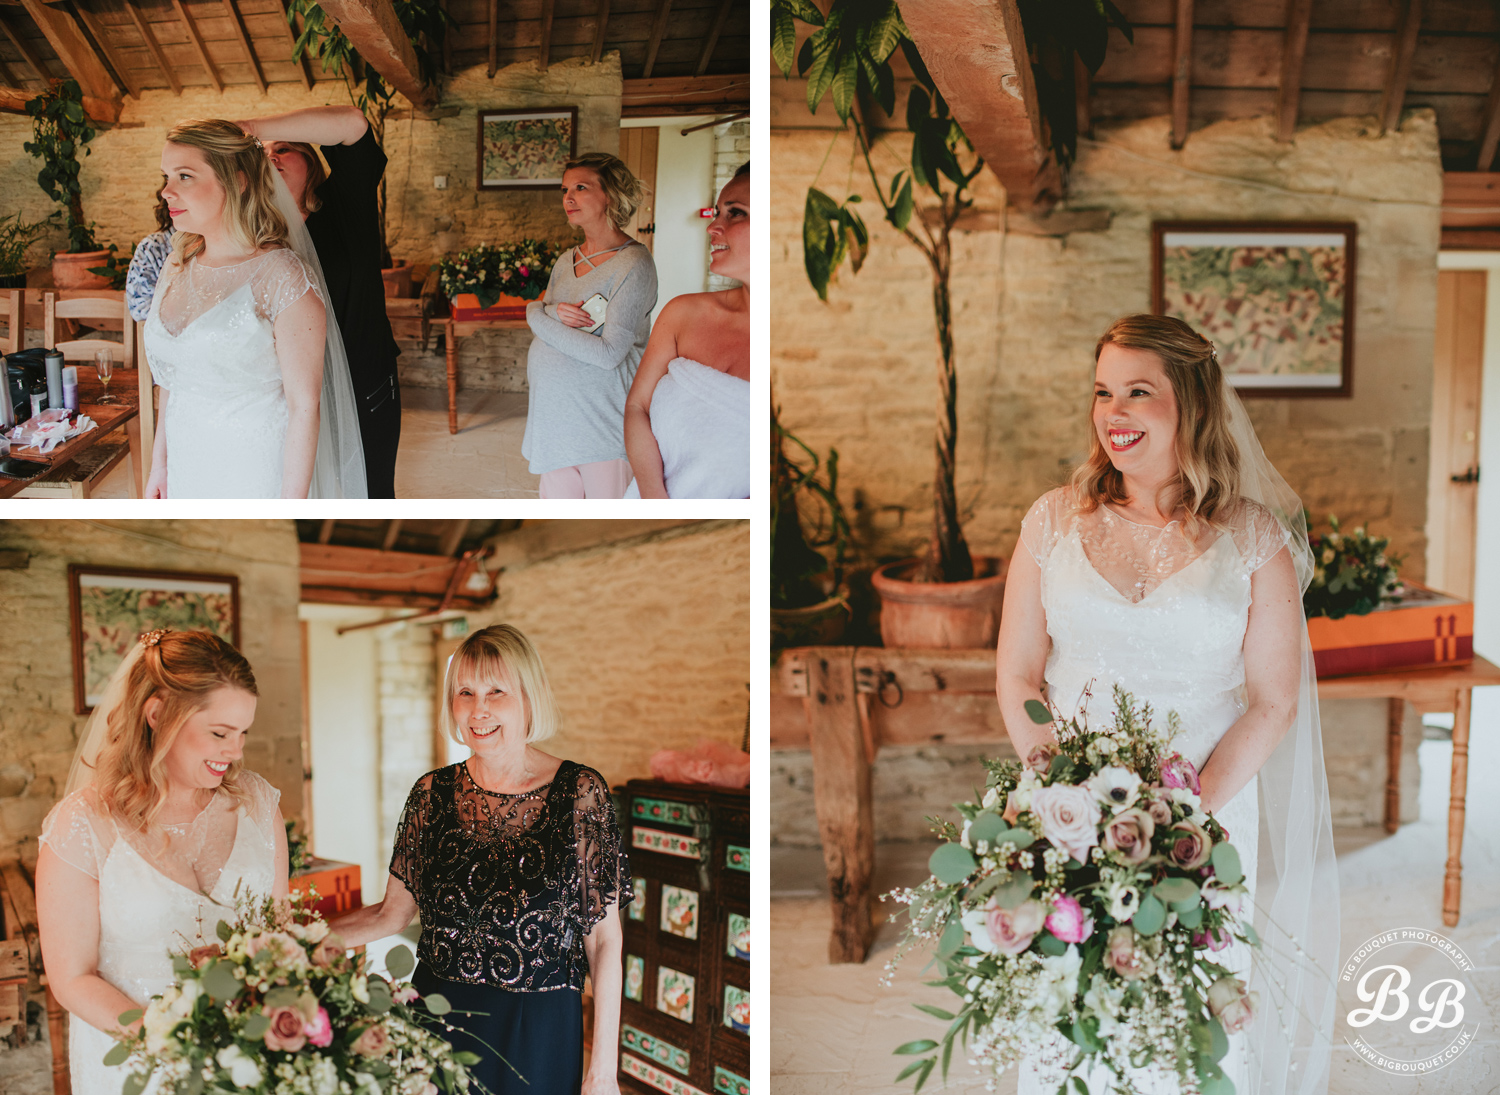 007-wastoneb_feb18_bb - Abi & Will's Wedding at Cripps Stone Barn, Cheltenham - Featured Wedding Photography